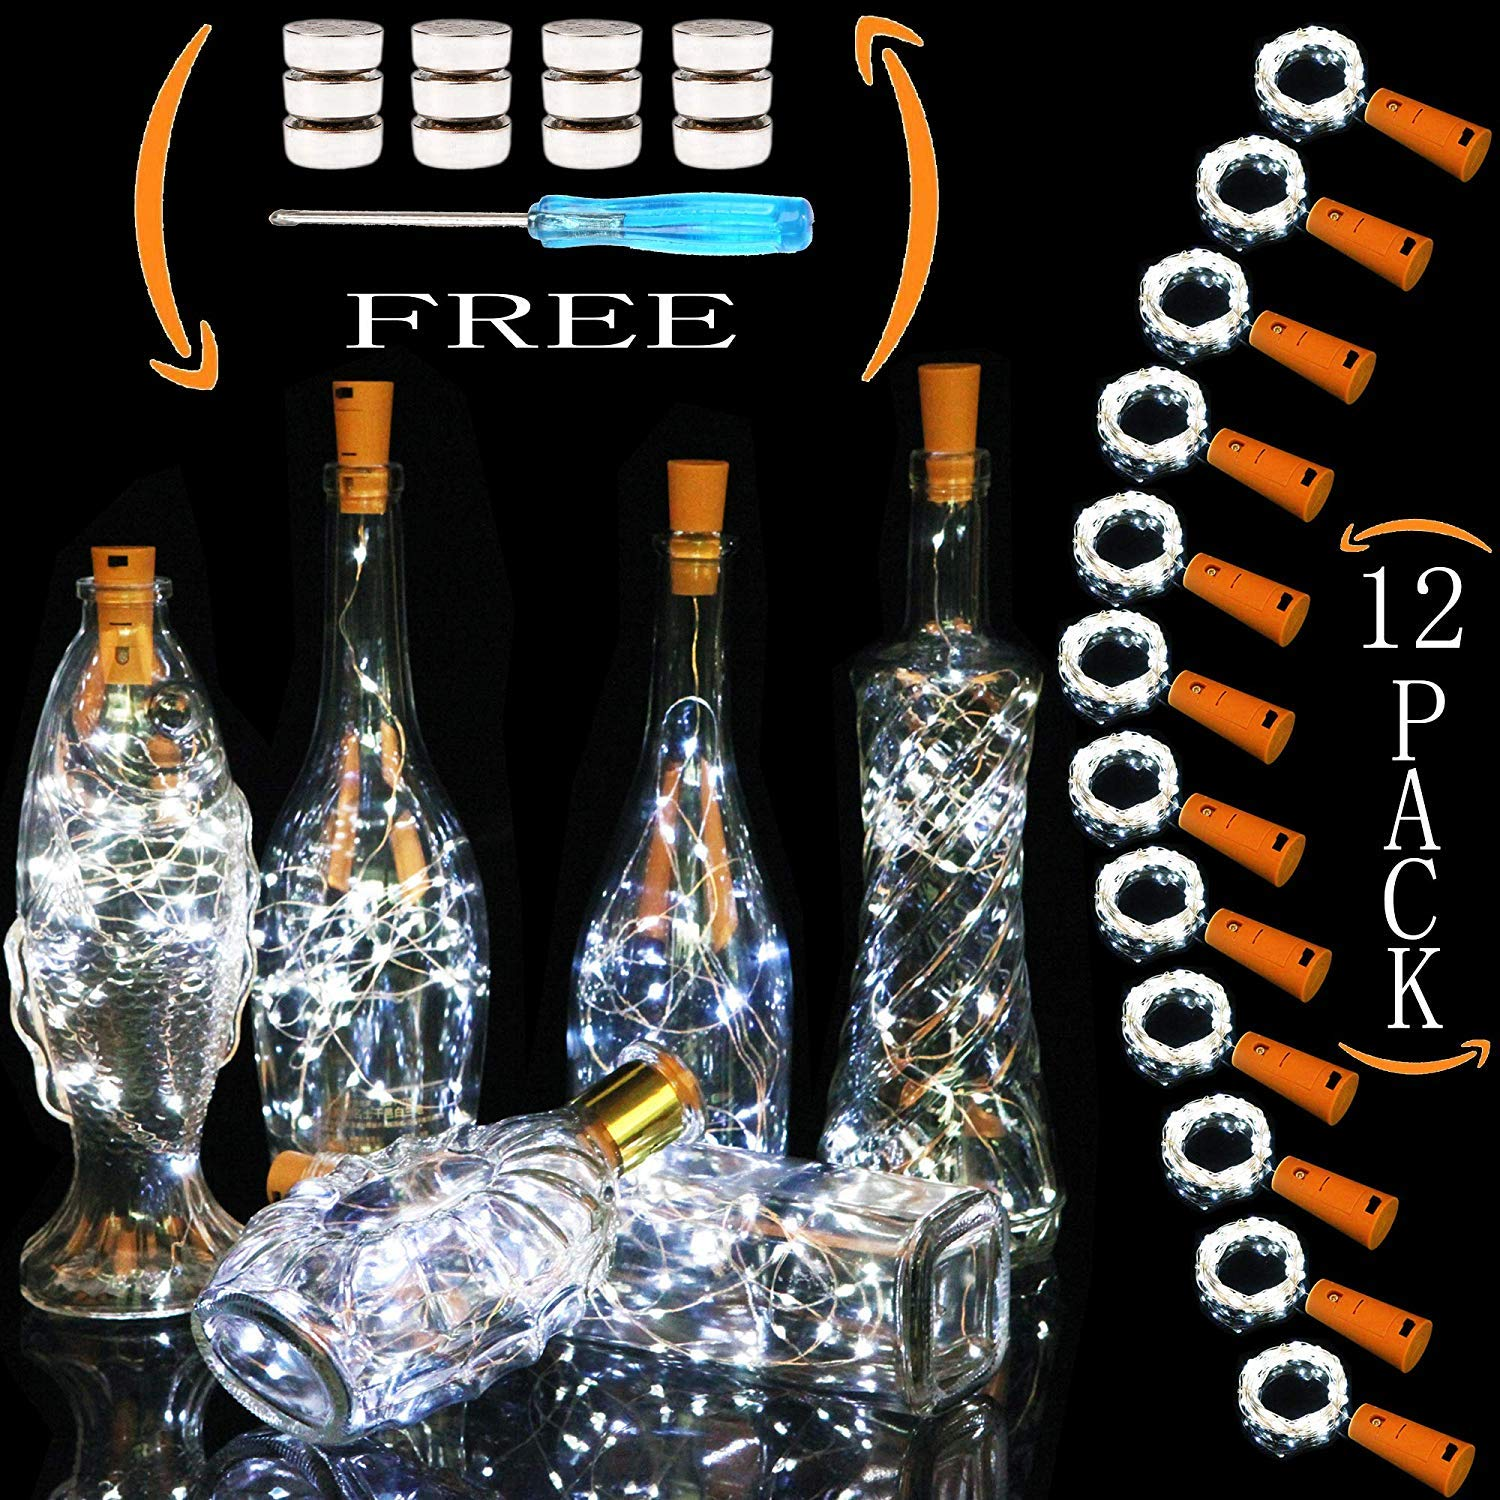 Wine Bottle Lights 12 Pack with Cork 20 LED Lamp Beads Battery Powered The Copper Wire is 6.56 Feet Long Used for Placing Wine Bottles for Decoration and Lighting (Cool White)